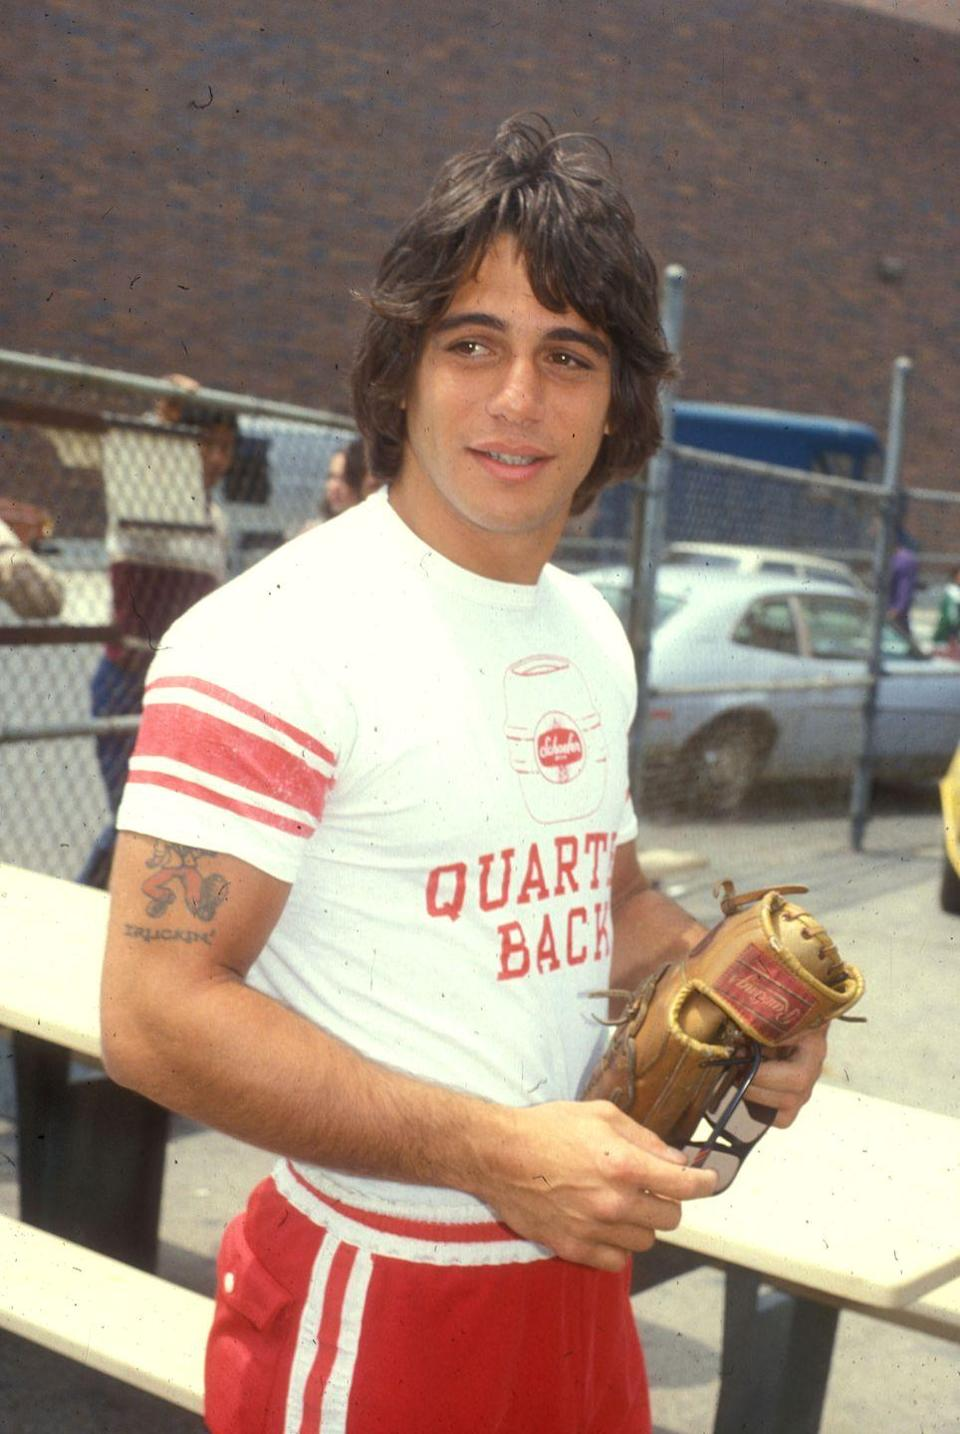 "<p>Though his career started in the '70s with <em>Taxi</em>, Tony Danza's biggest decade by far was the '80s. He continued costarring in <em>Taxi</em> until 1983, appeared in several movies <em>and</em><span class=""redactor-invisible-space""> began starring on <em>Who's The Boss?</em><span class=""redactor-invisible-space"">, the beloved sitcom which ran from 1984 all the way until 1992.</span></span></p>"